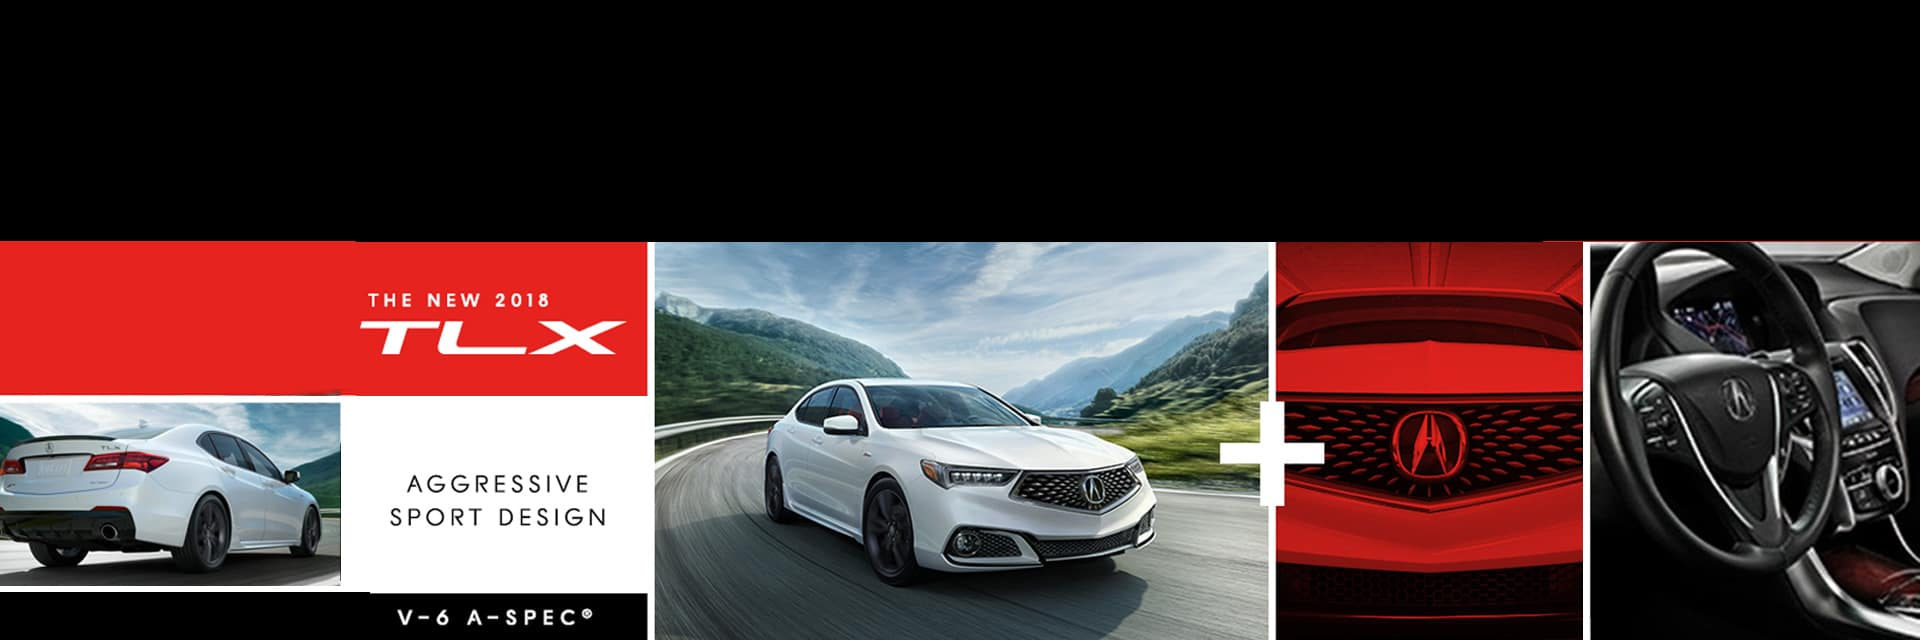 2018 TLX A-Spec